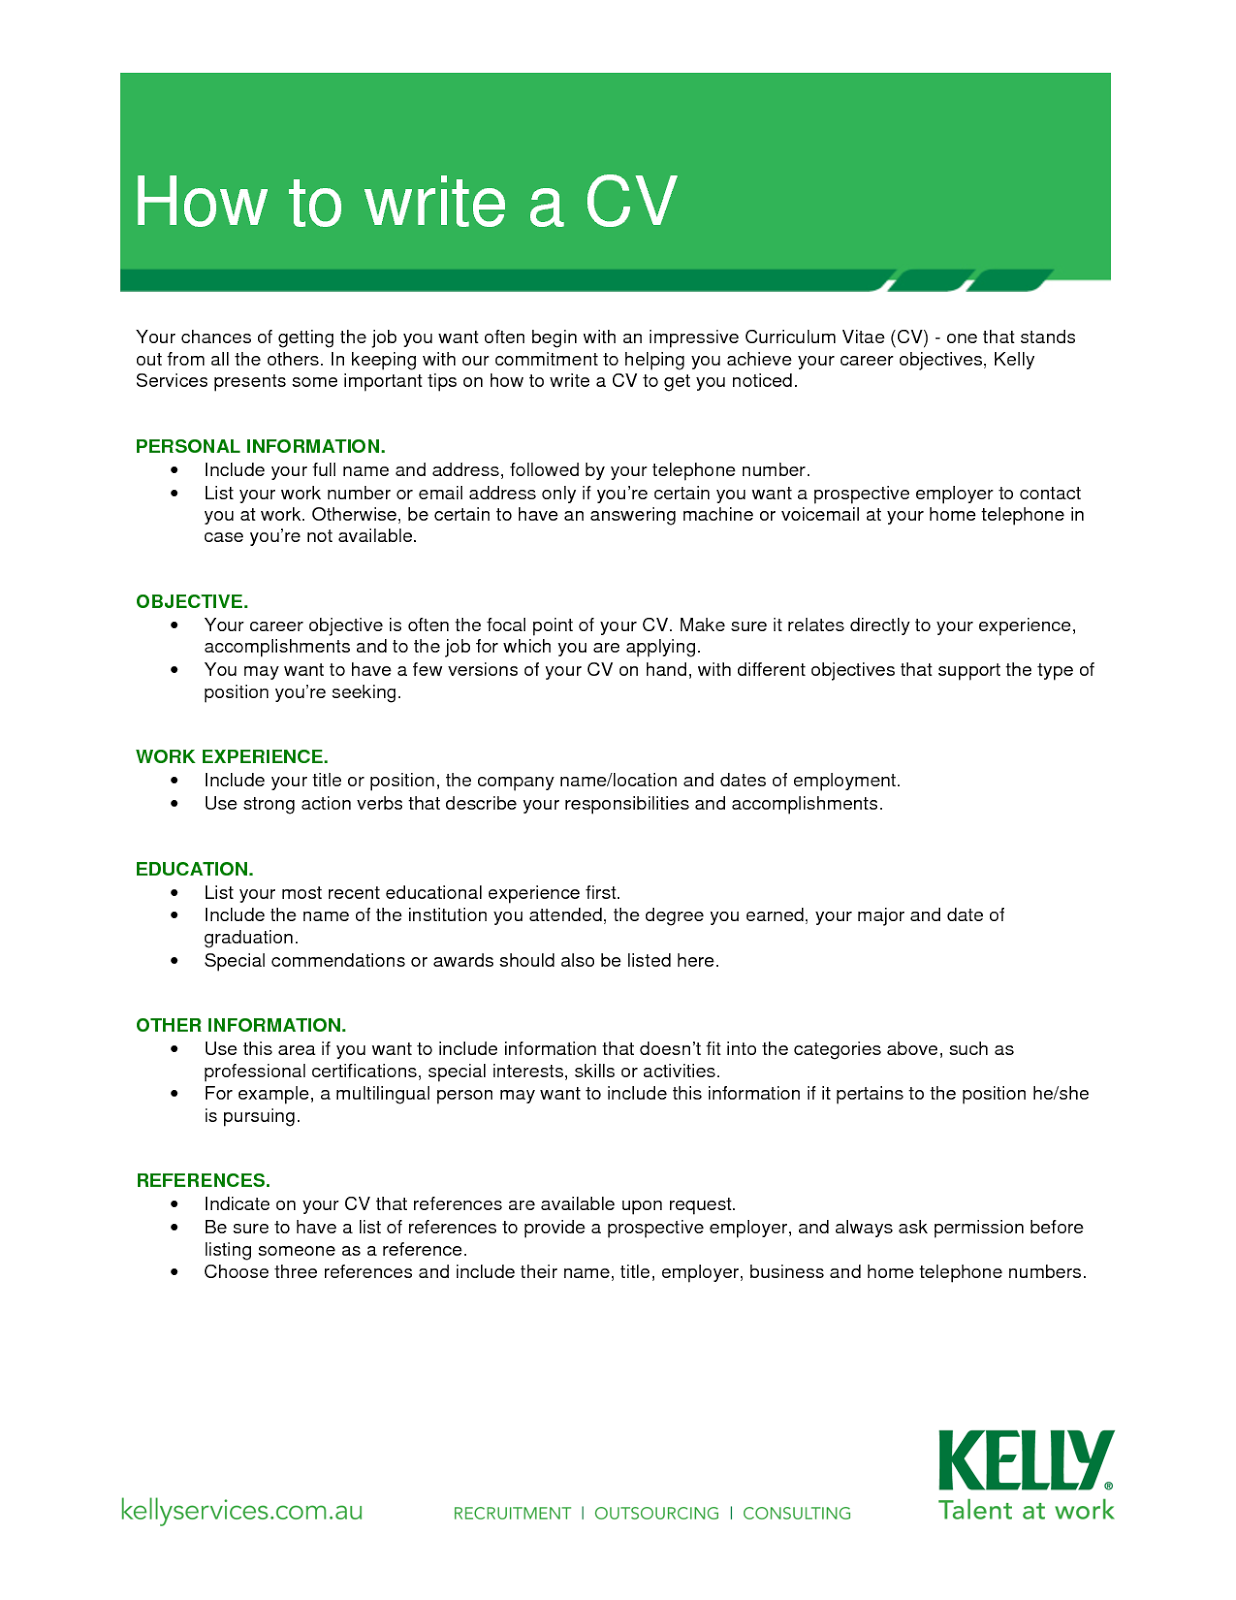 UK CV Writing Services